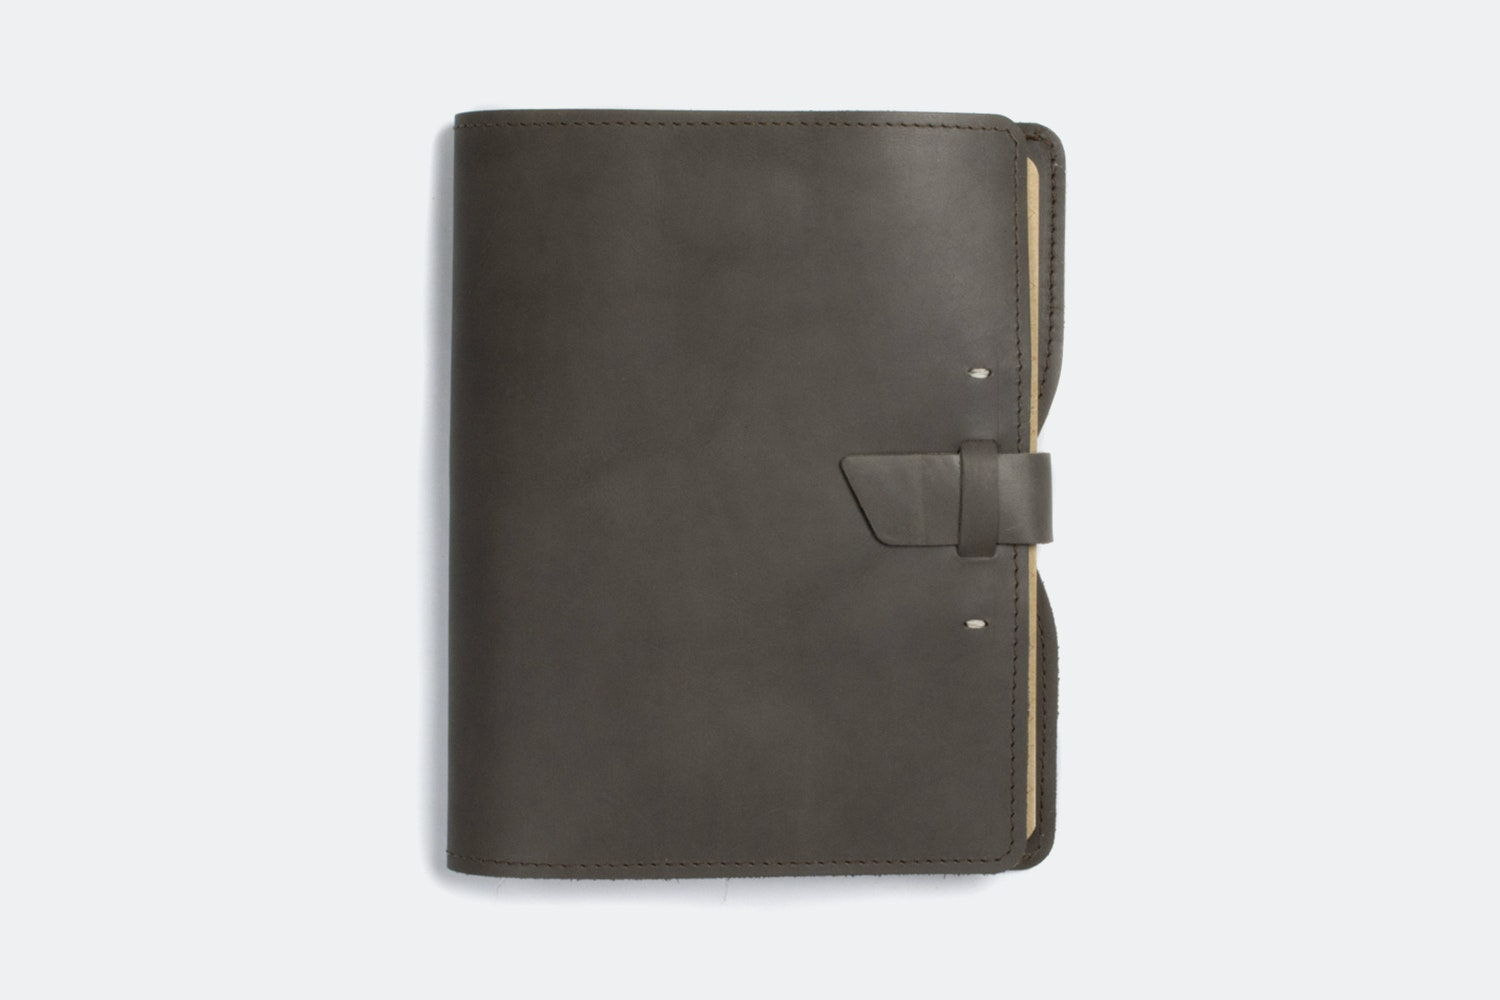 Mini Ipad X-Case -  Charcoal (- $10)